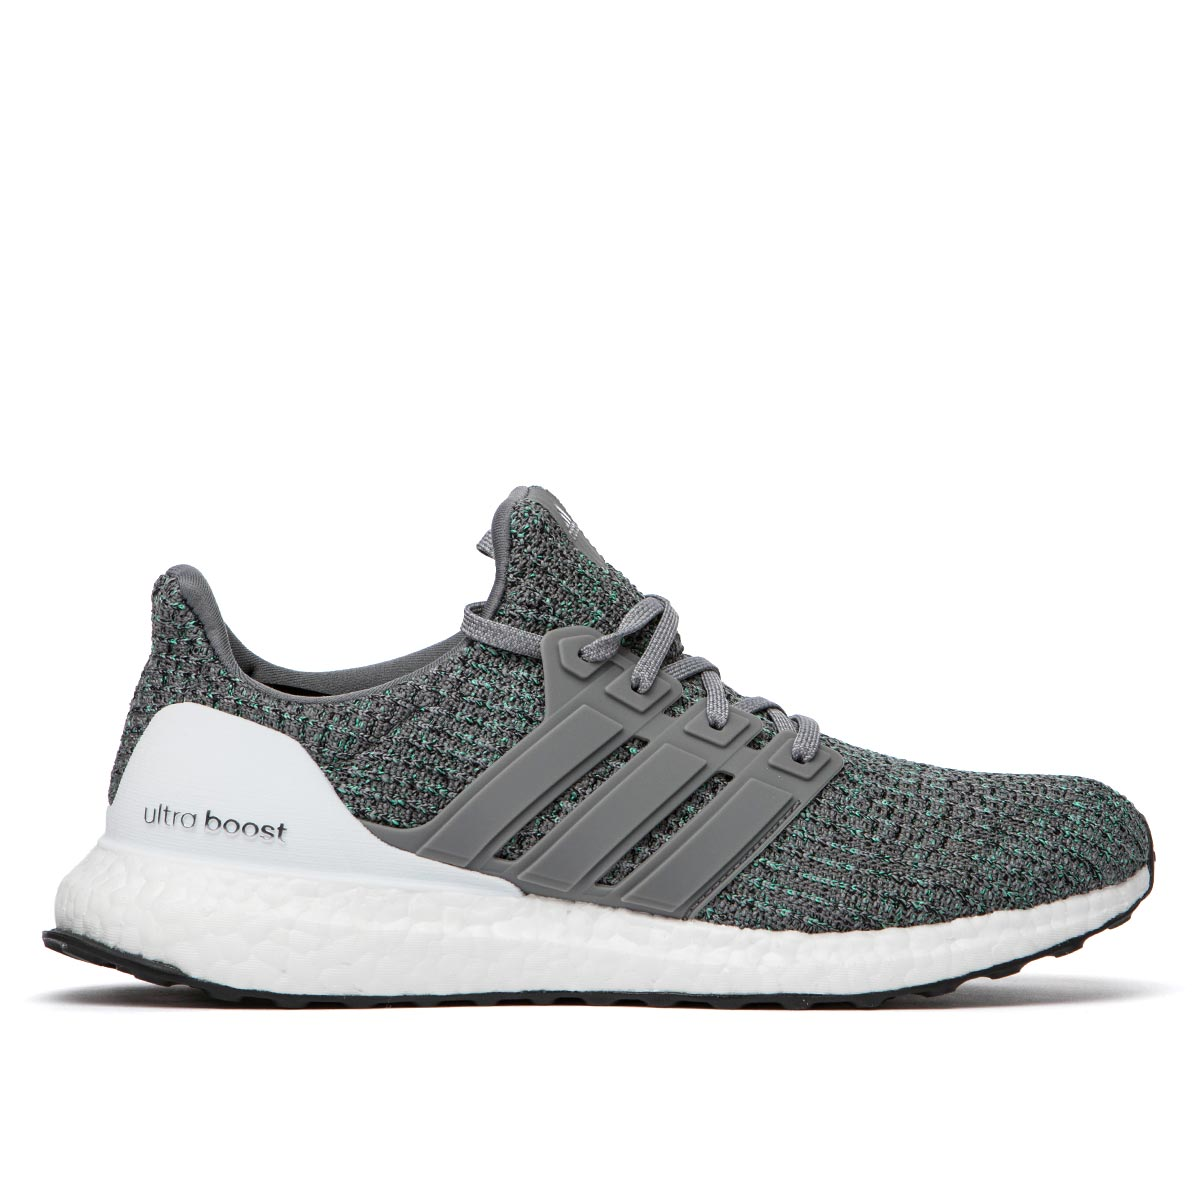 low priced 74e60 22c3f Ultraboost 4.0